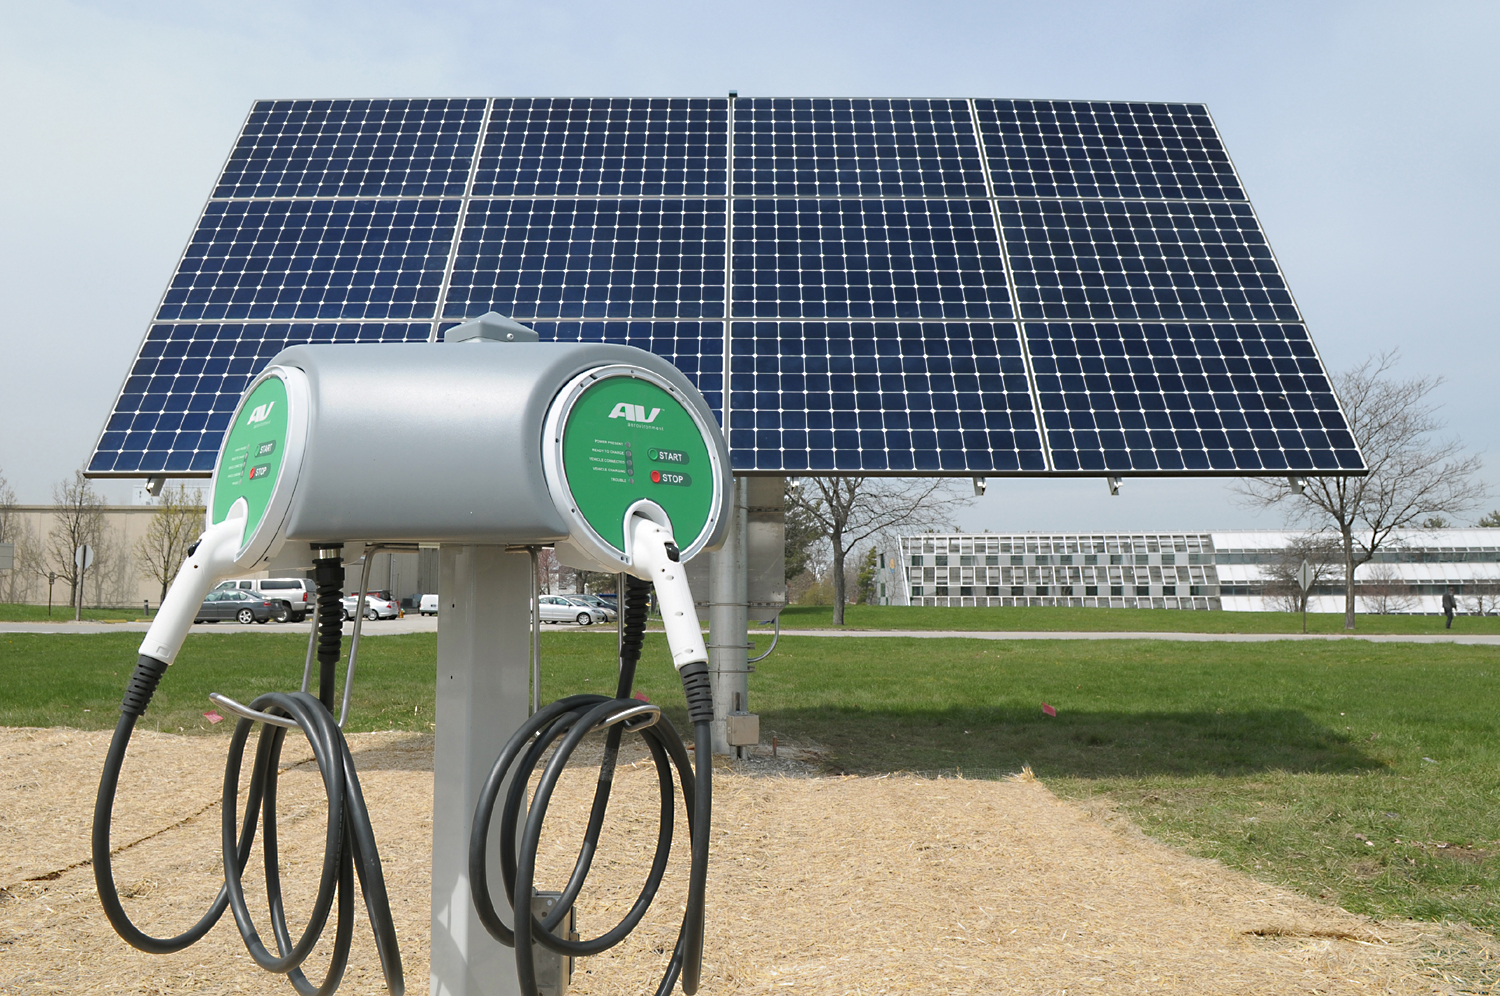 Electric vehicle stations, like those pictured here, are necessary for the clean economy.